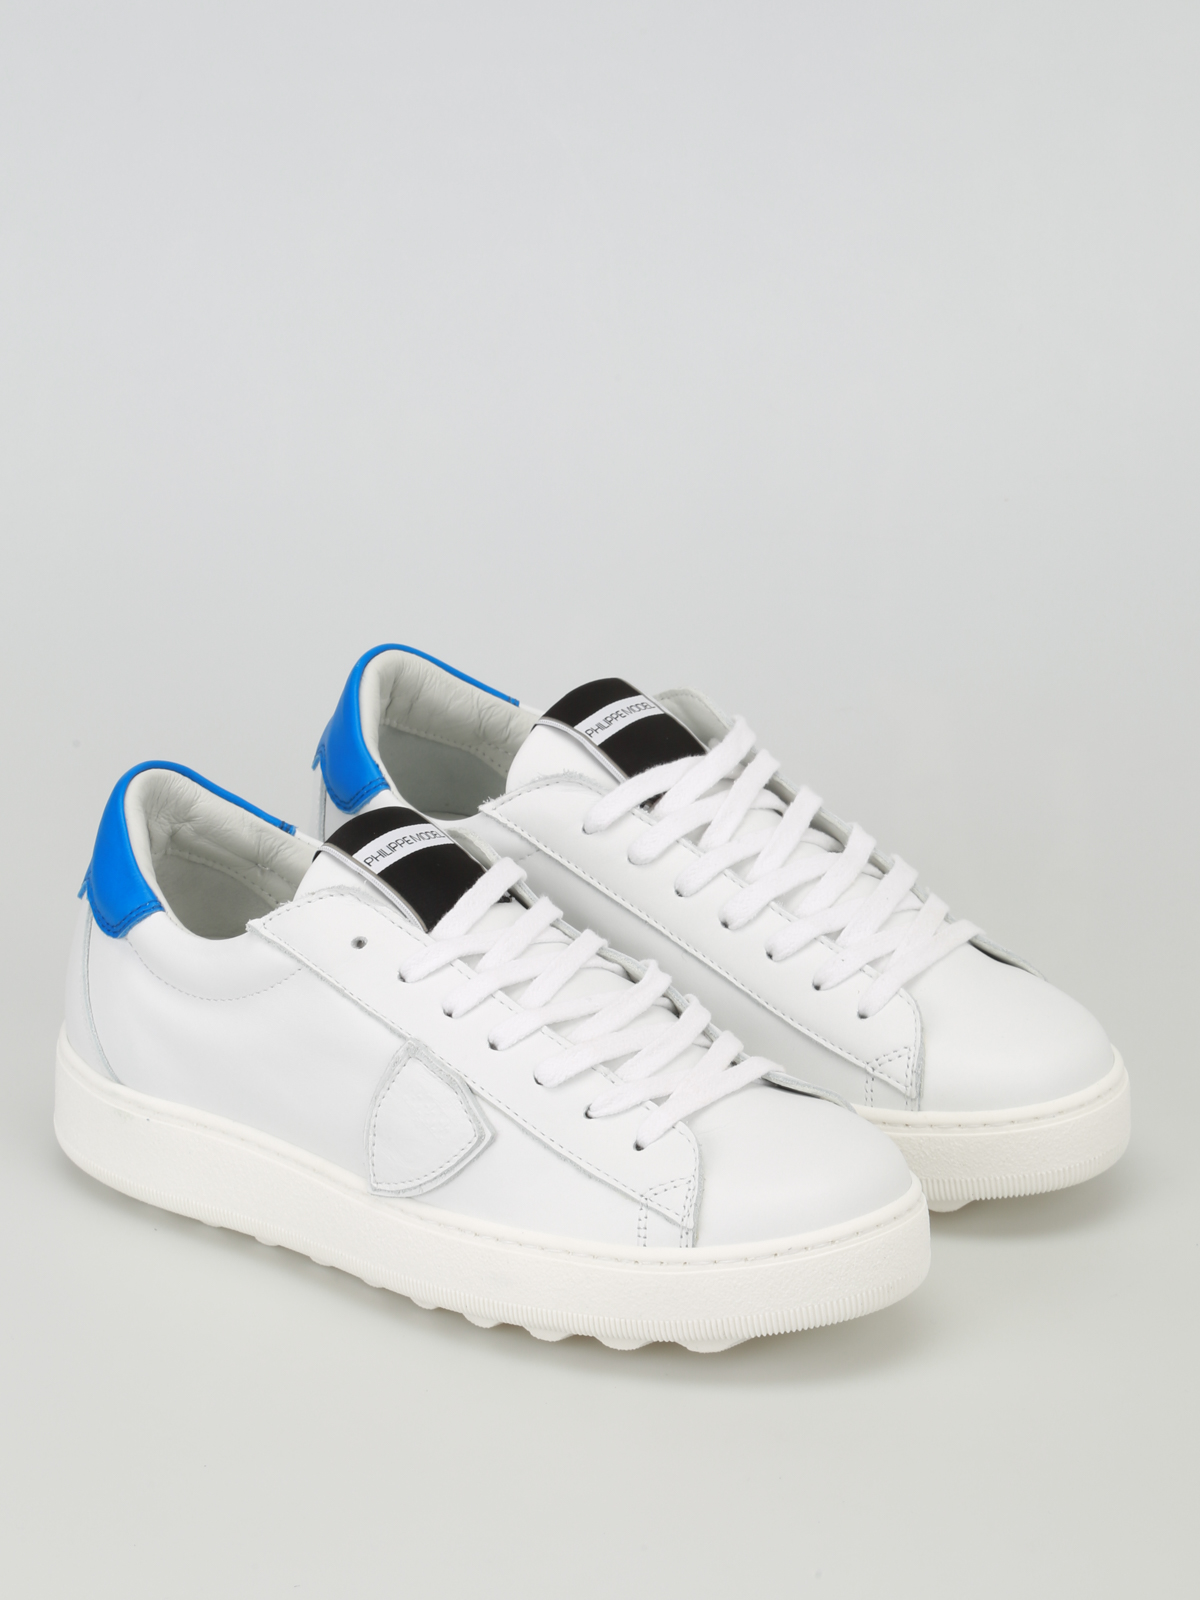 Blue White Sneakers Vblu Model Trainers Philippe And Madeleine EIbe9WDH2Y